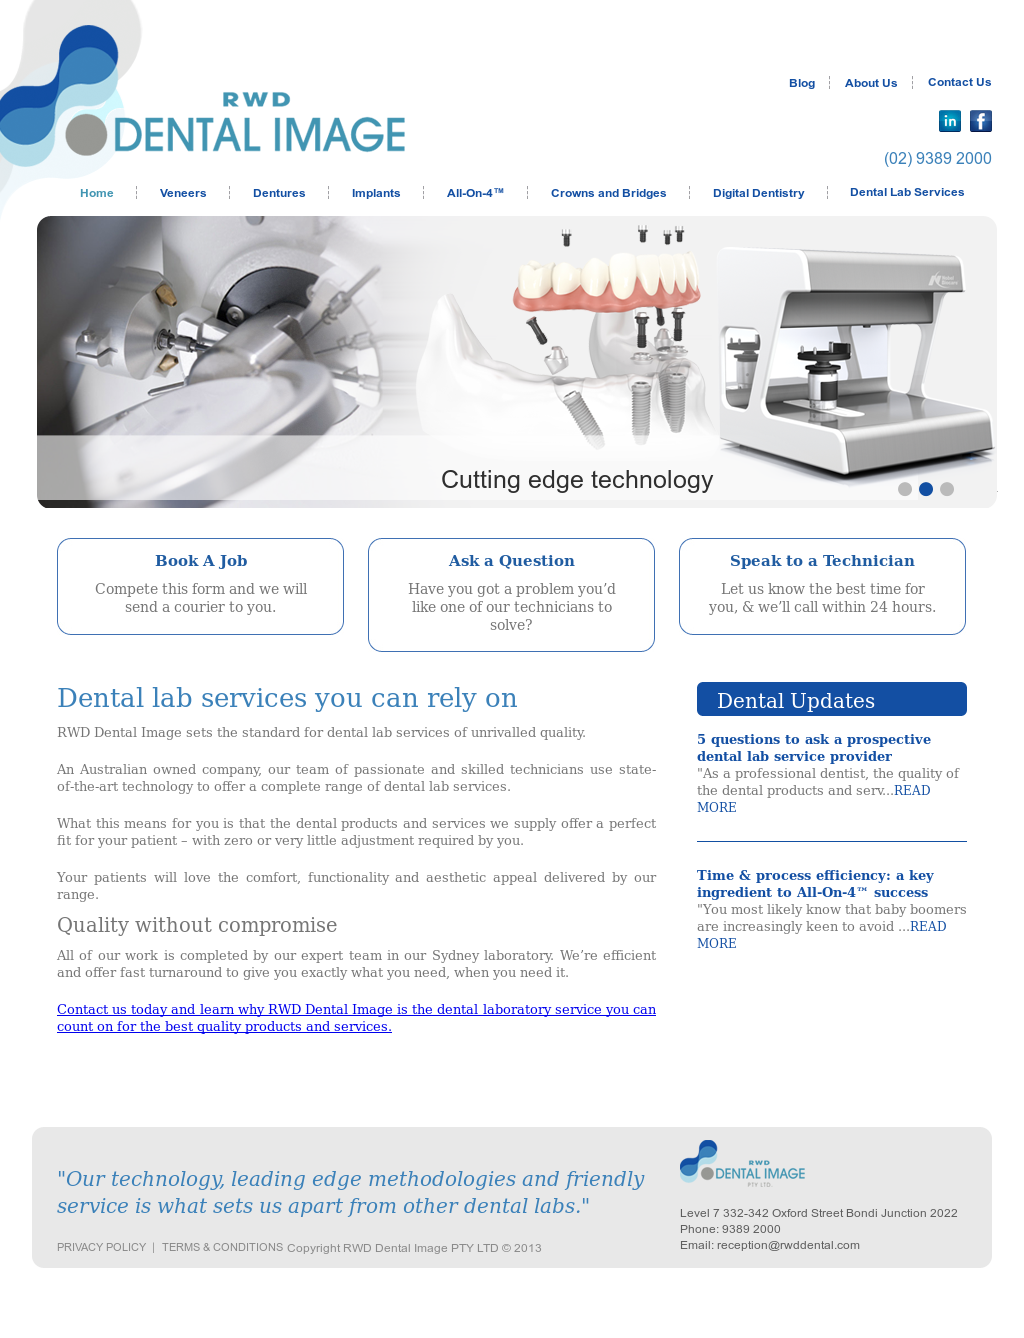 RWD Dental Image Competitors, Revenue and Employees - Owler